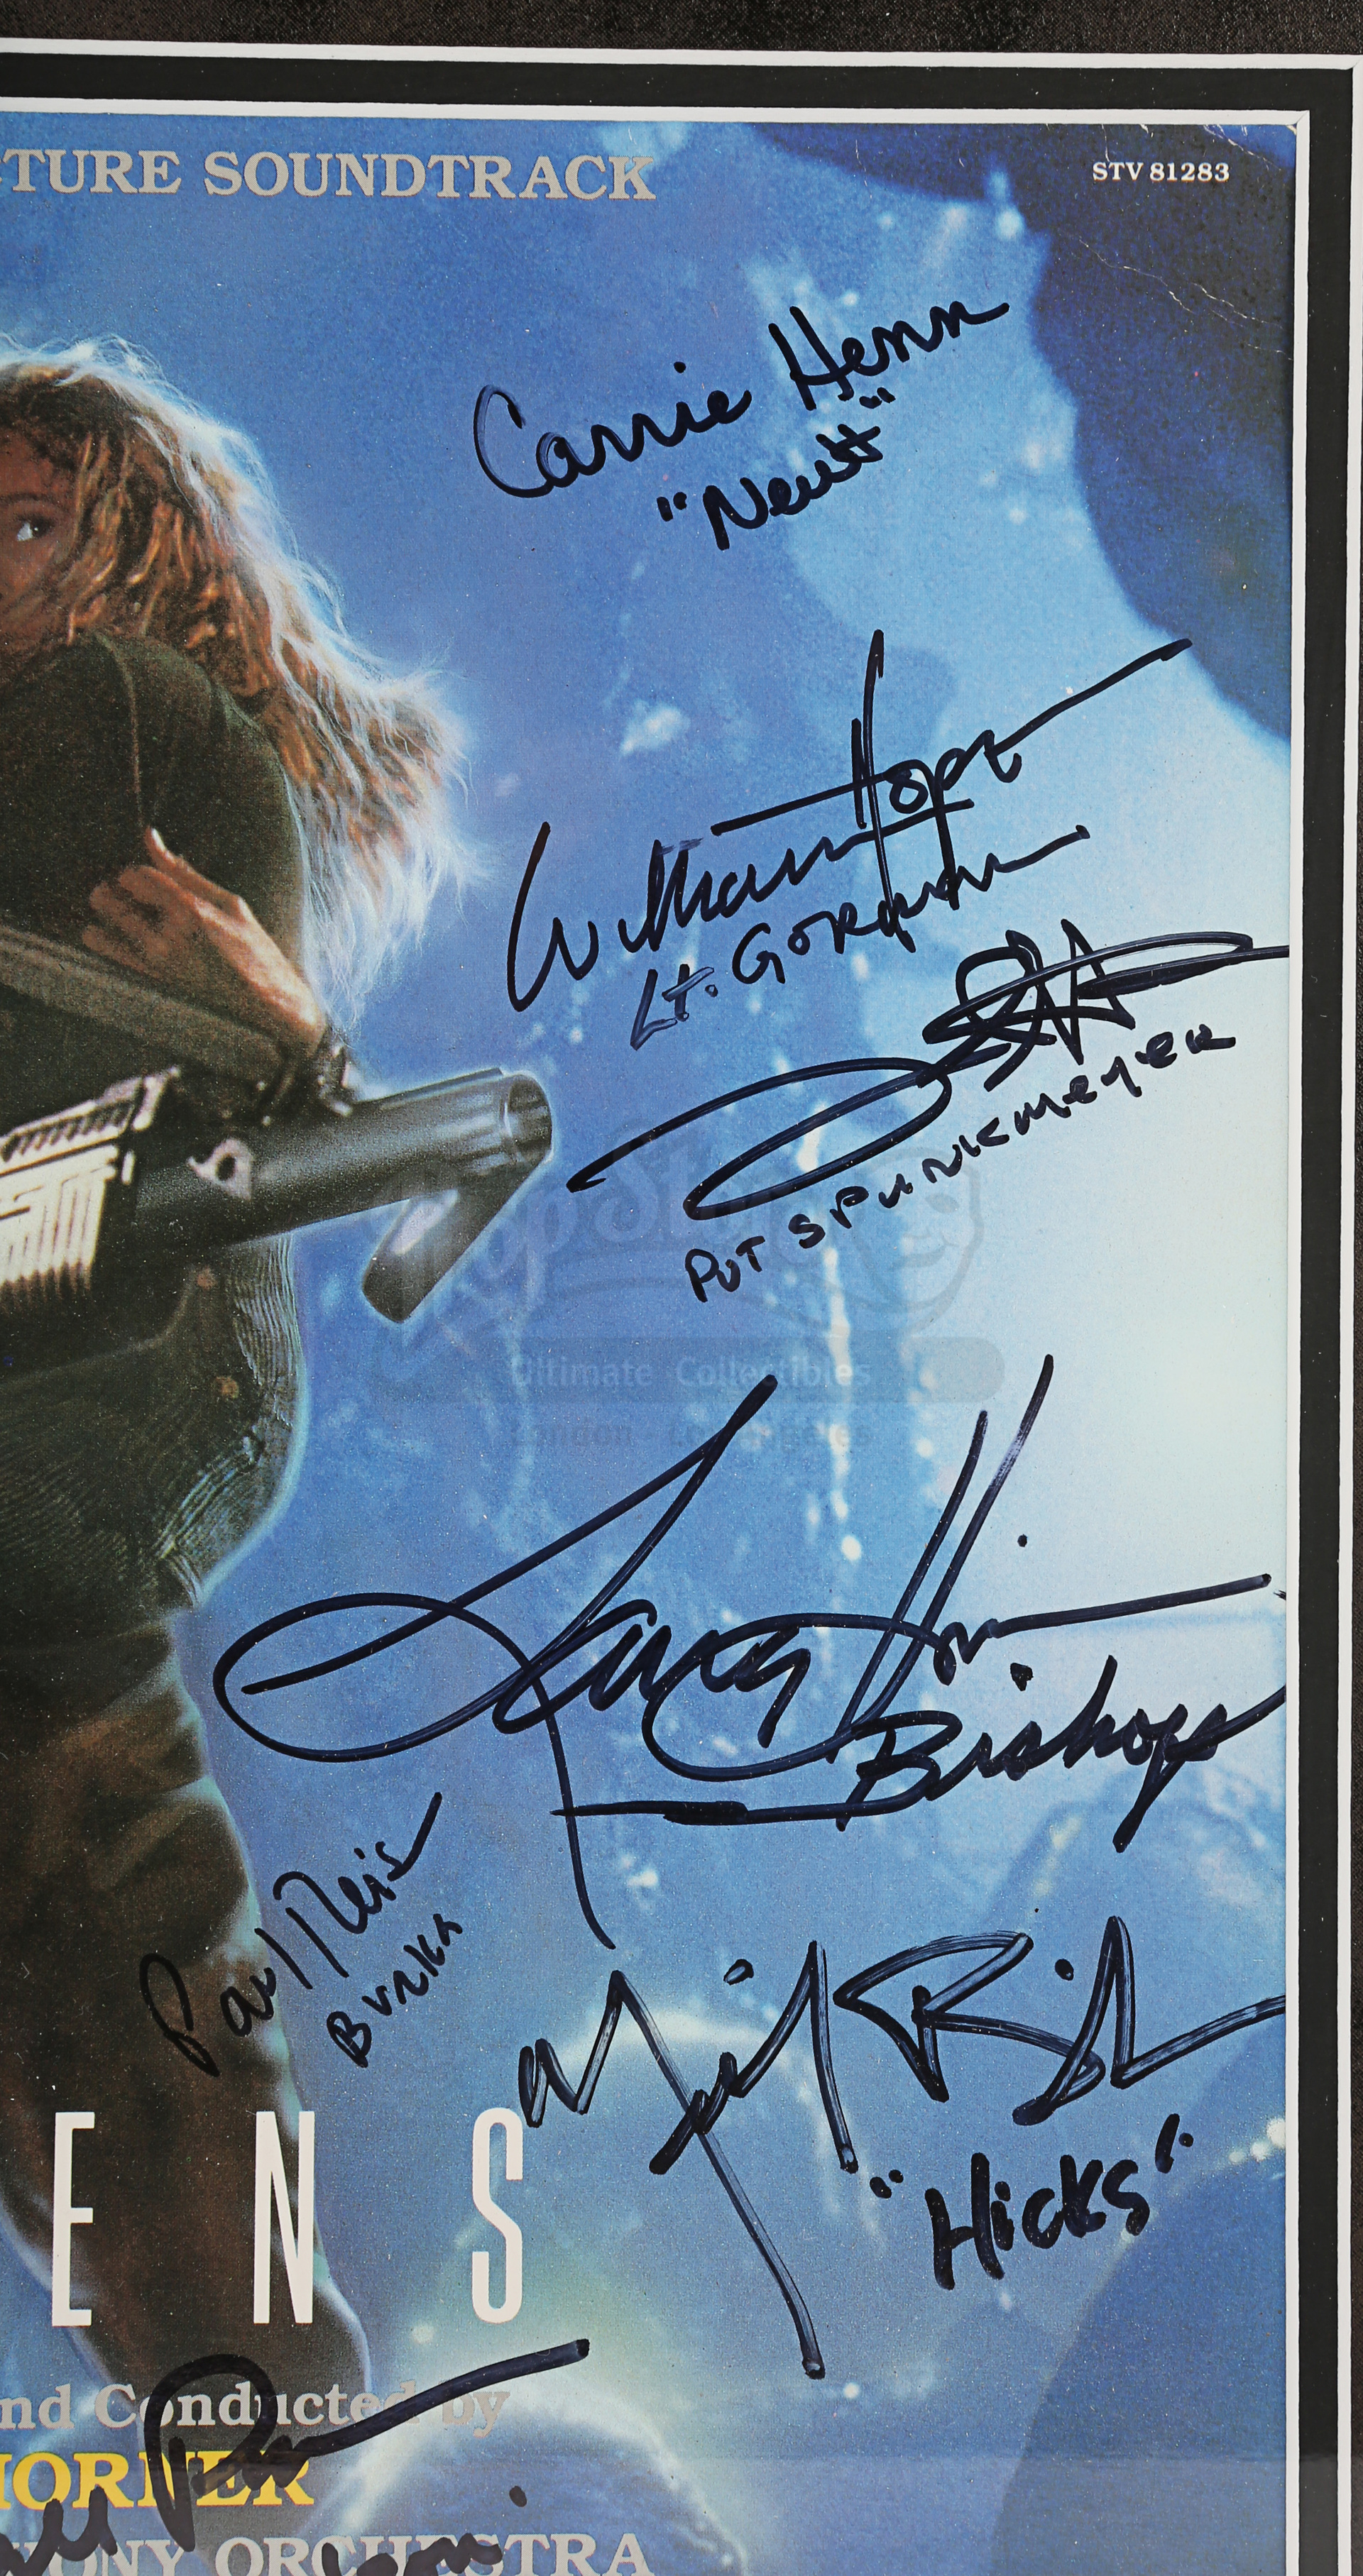 ALIENS (1986) - Framed Cast-Autographed Soundtrack Cover - Image 4 of 5